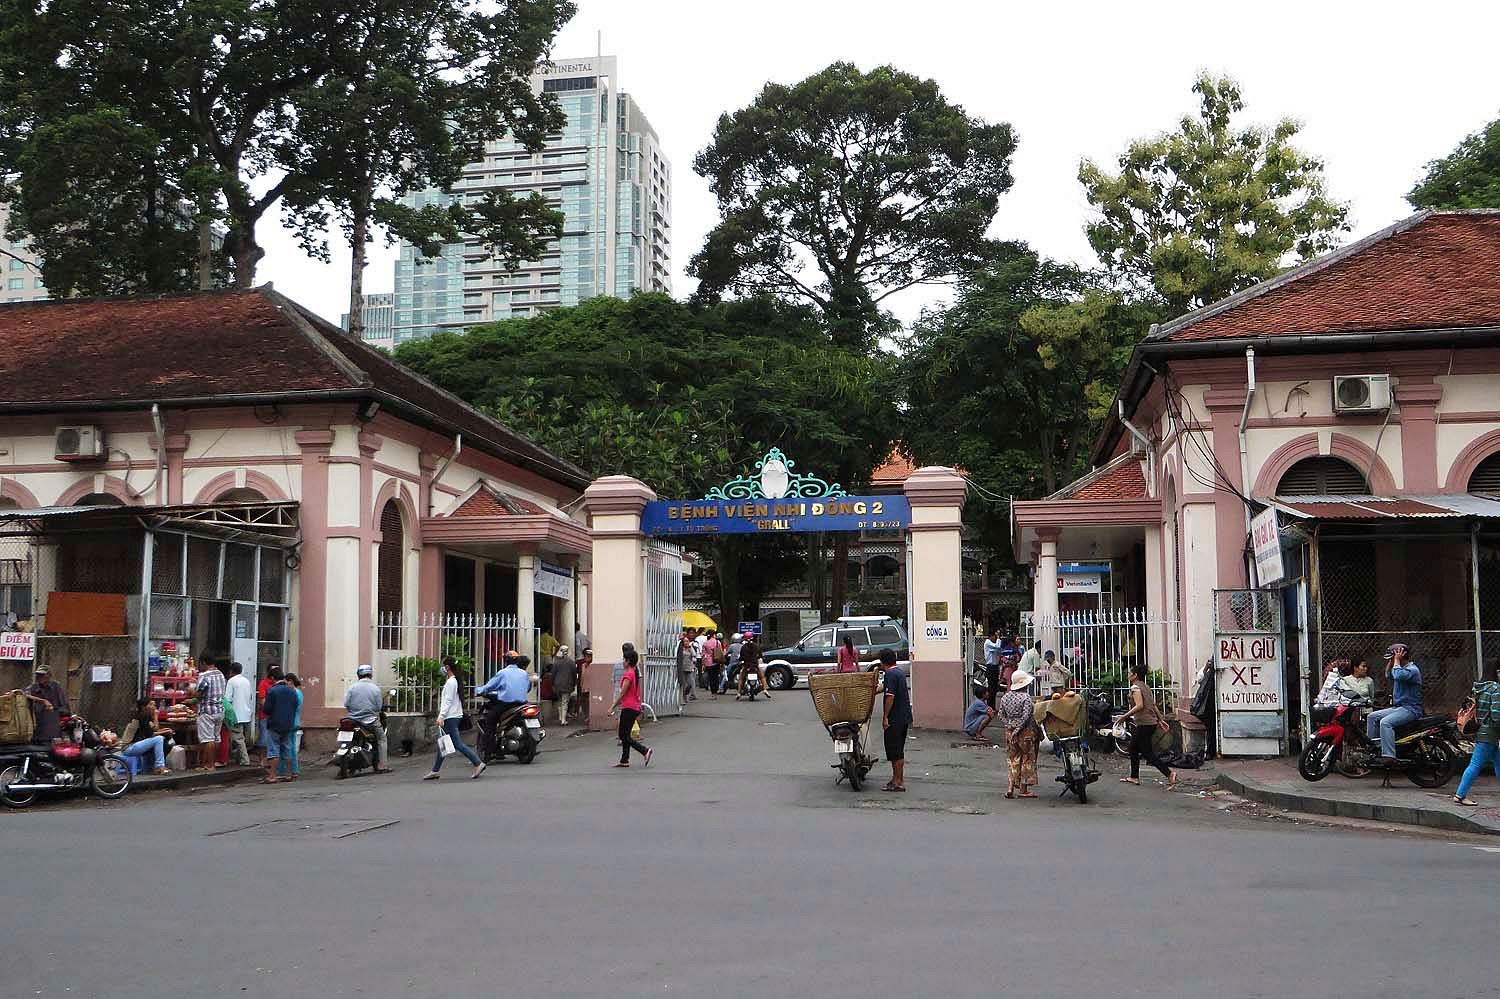 Old Saigon Building of the Week: The Former Grall Hospital